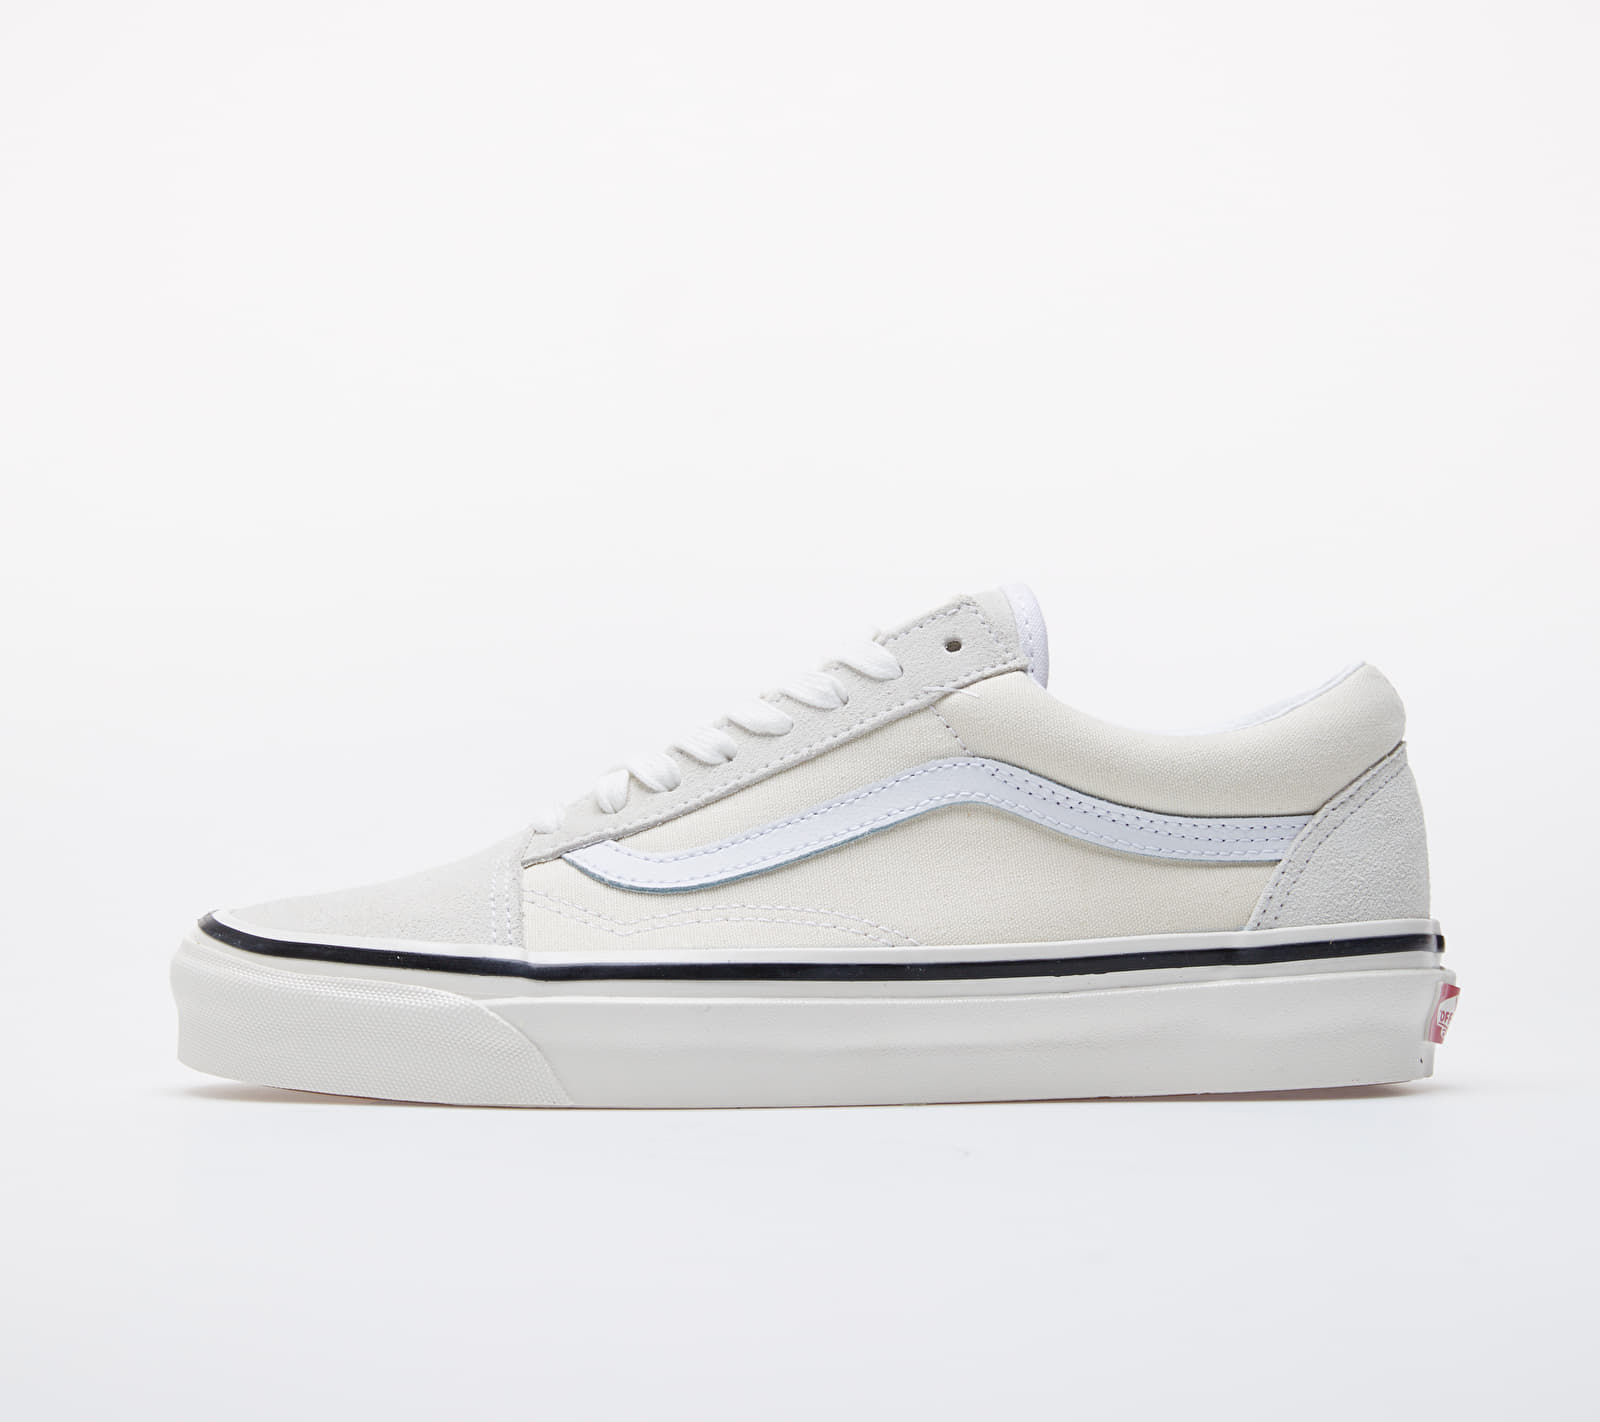 Vans Old Skool 36 DX Classic White EUR 42